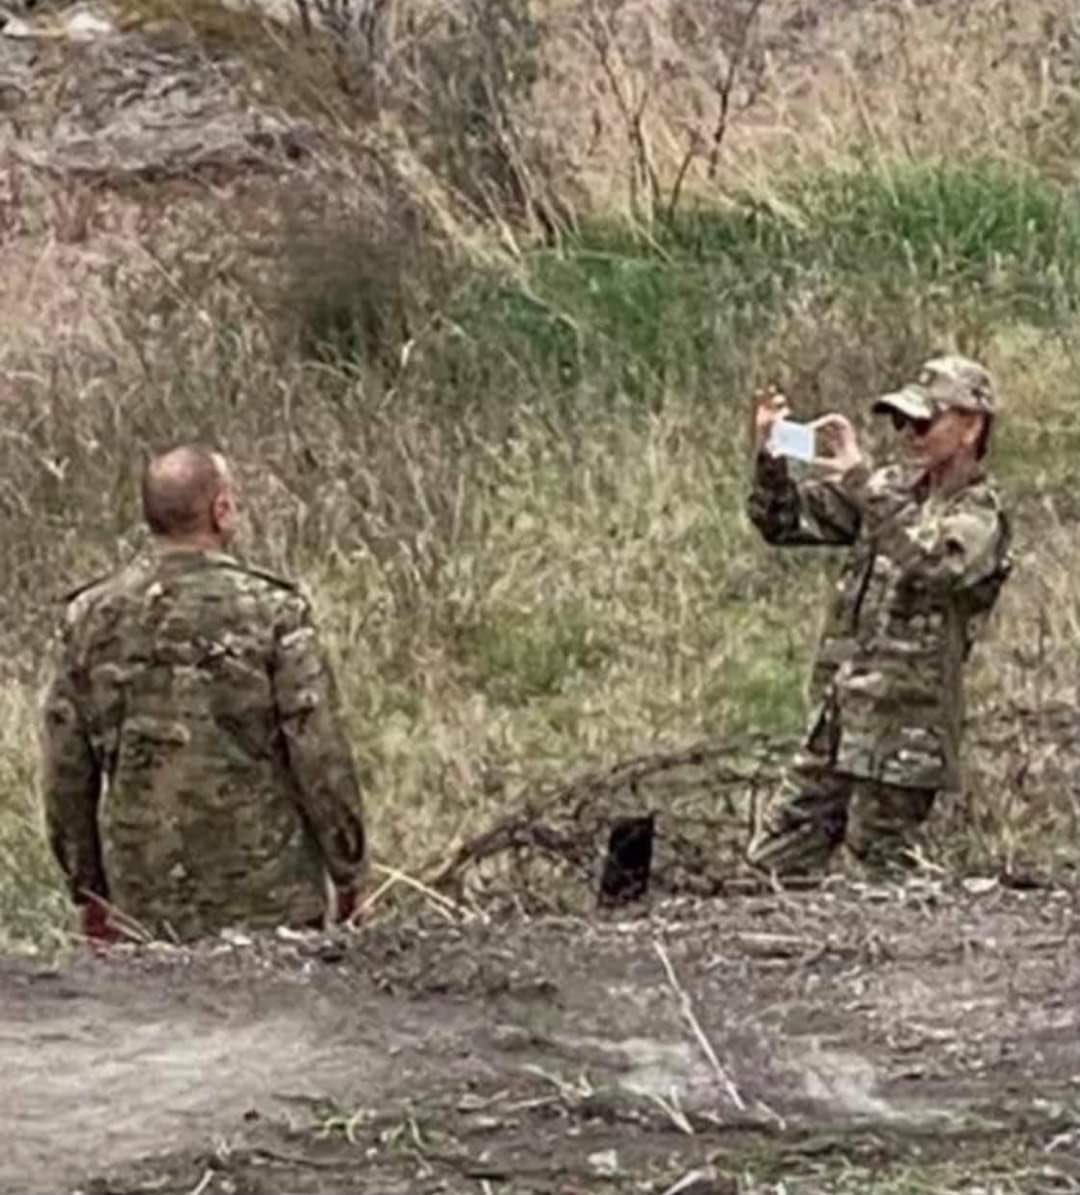 Azerbaijani Vice President Mehriban Aliyeva takes a photo of President Ilham Aliyev near the border with Iran in the city of Jabrayil, Nov. 17, 2020. (Photo shared by unidentified Iranian sniper on Twitter)